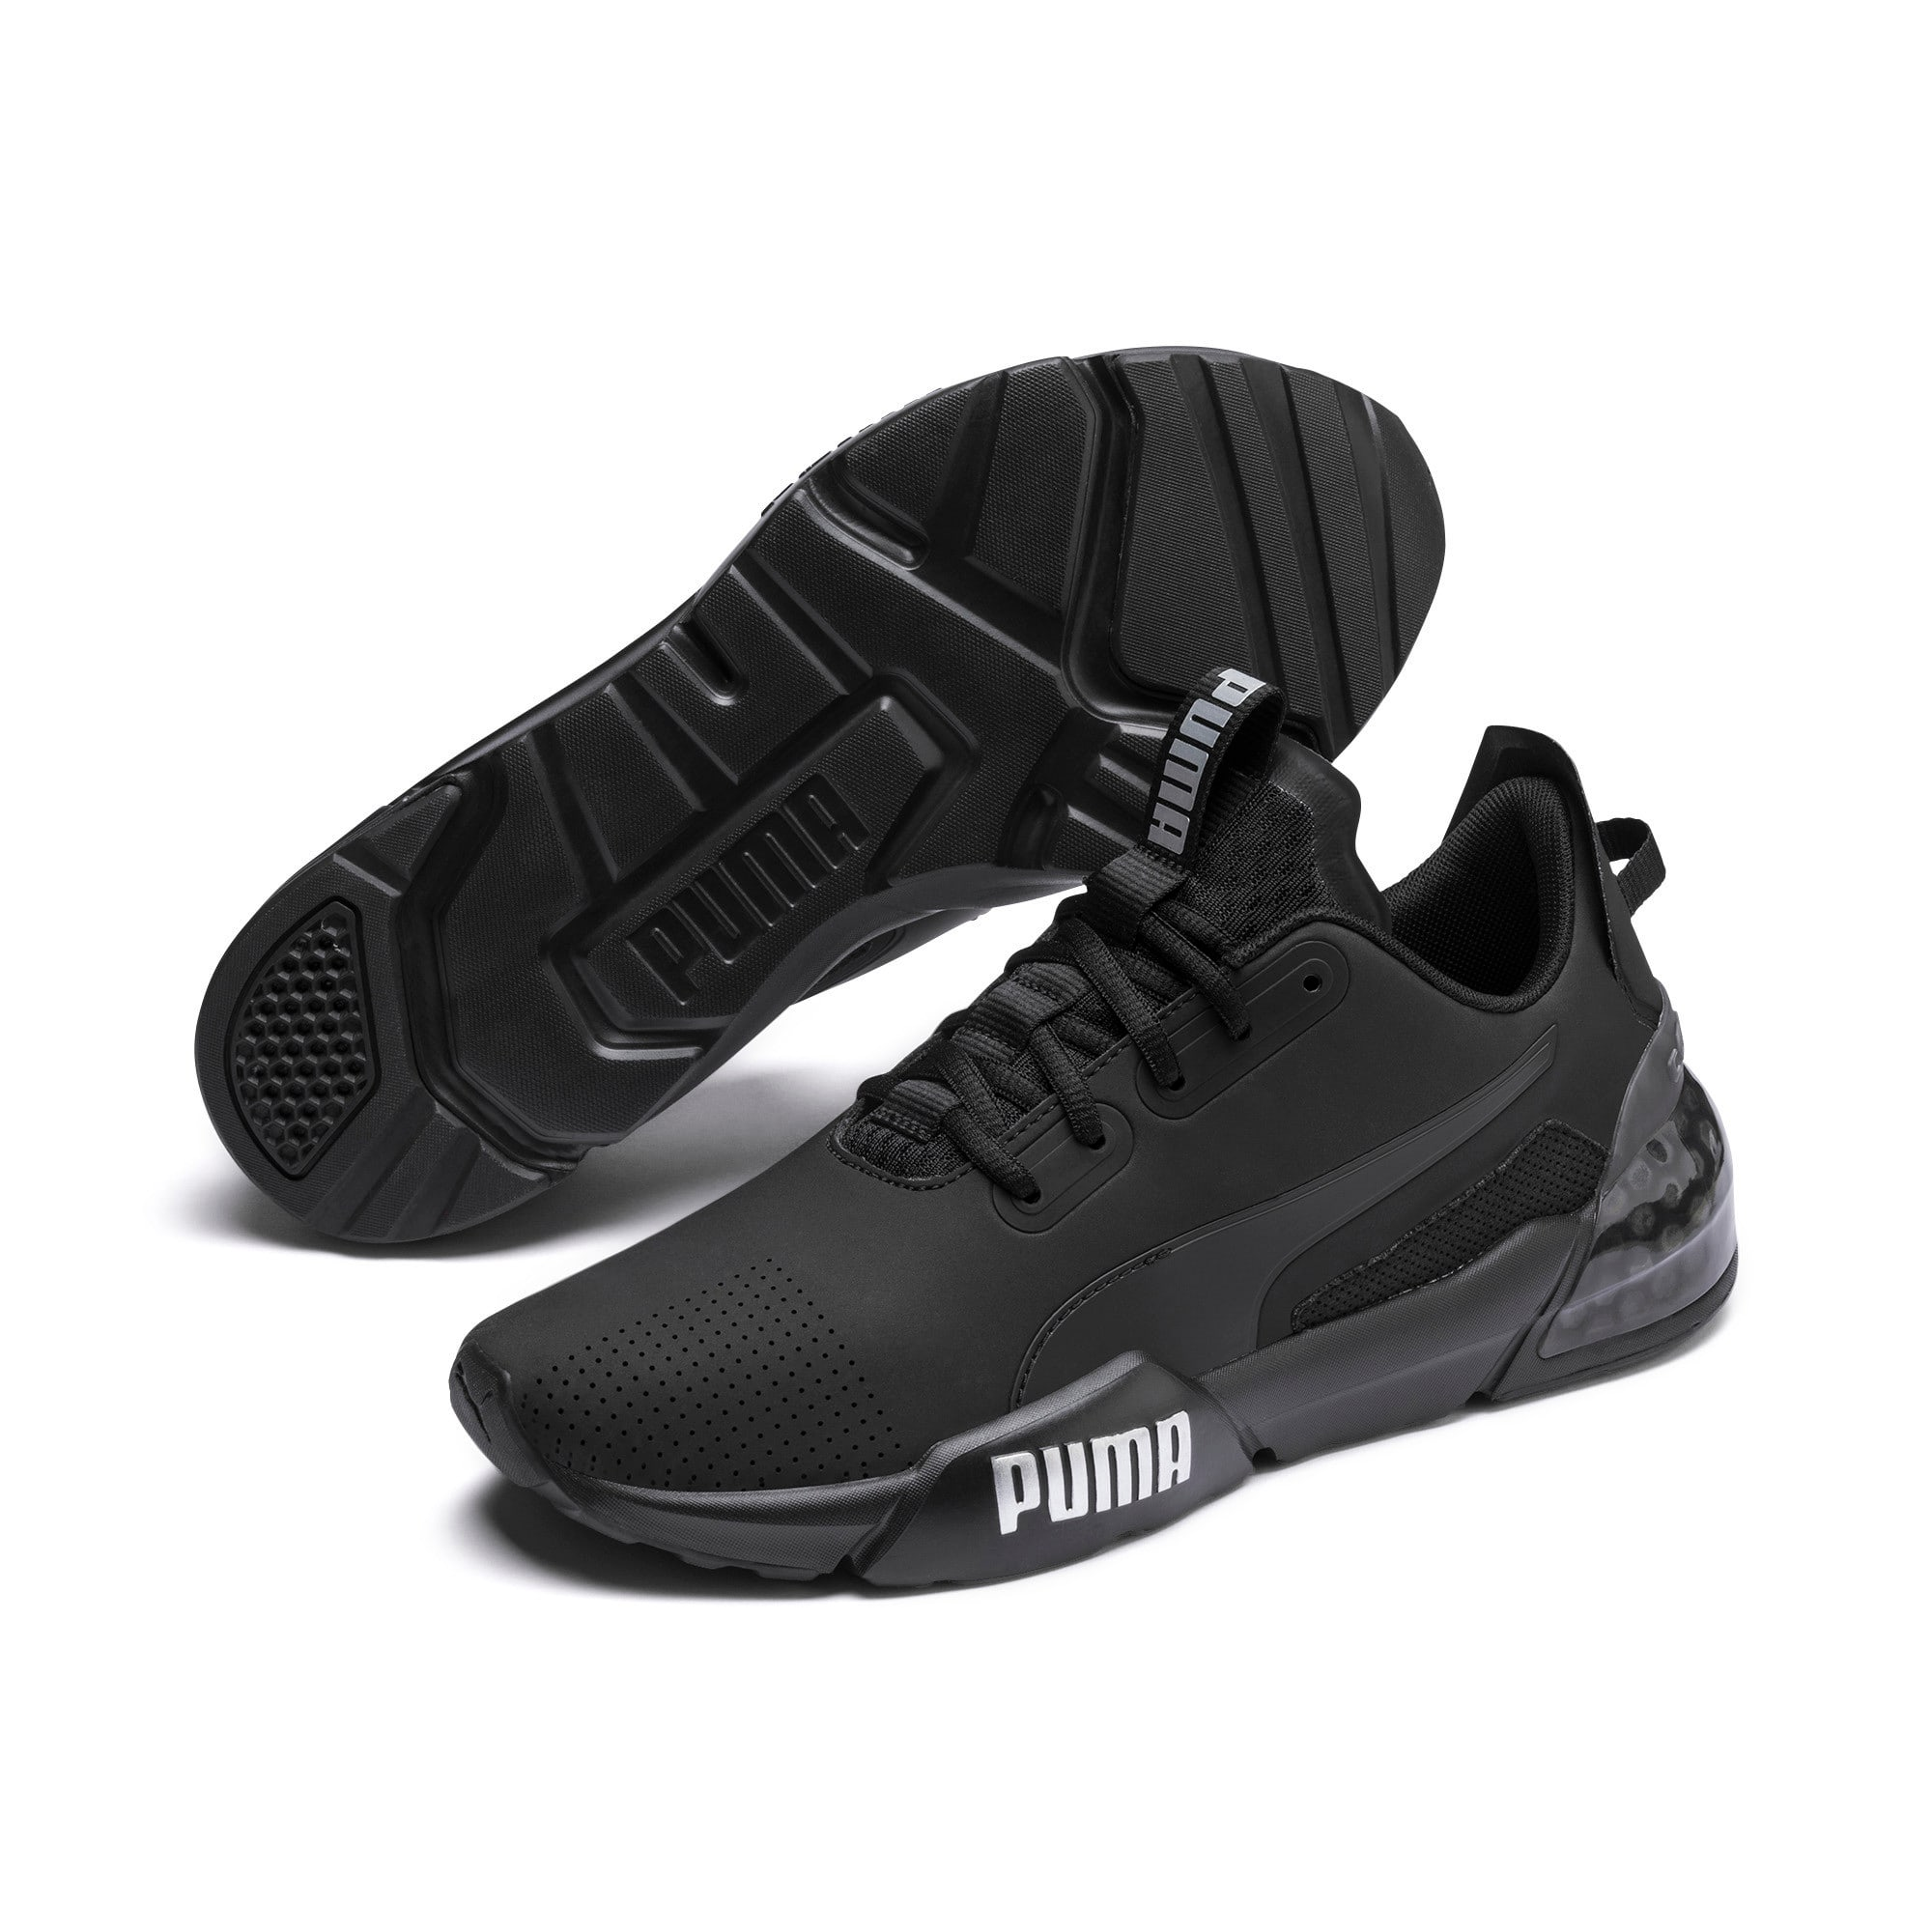 Thumbnail 2 of CELL Phase Men's Training Shoes, Puma Black-CASTLEROCK, medium